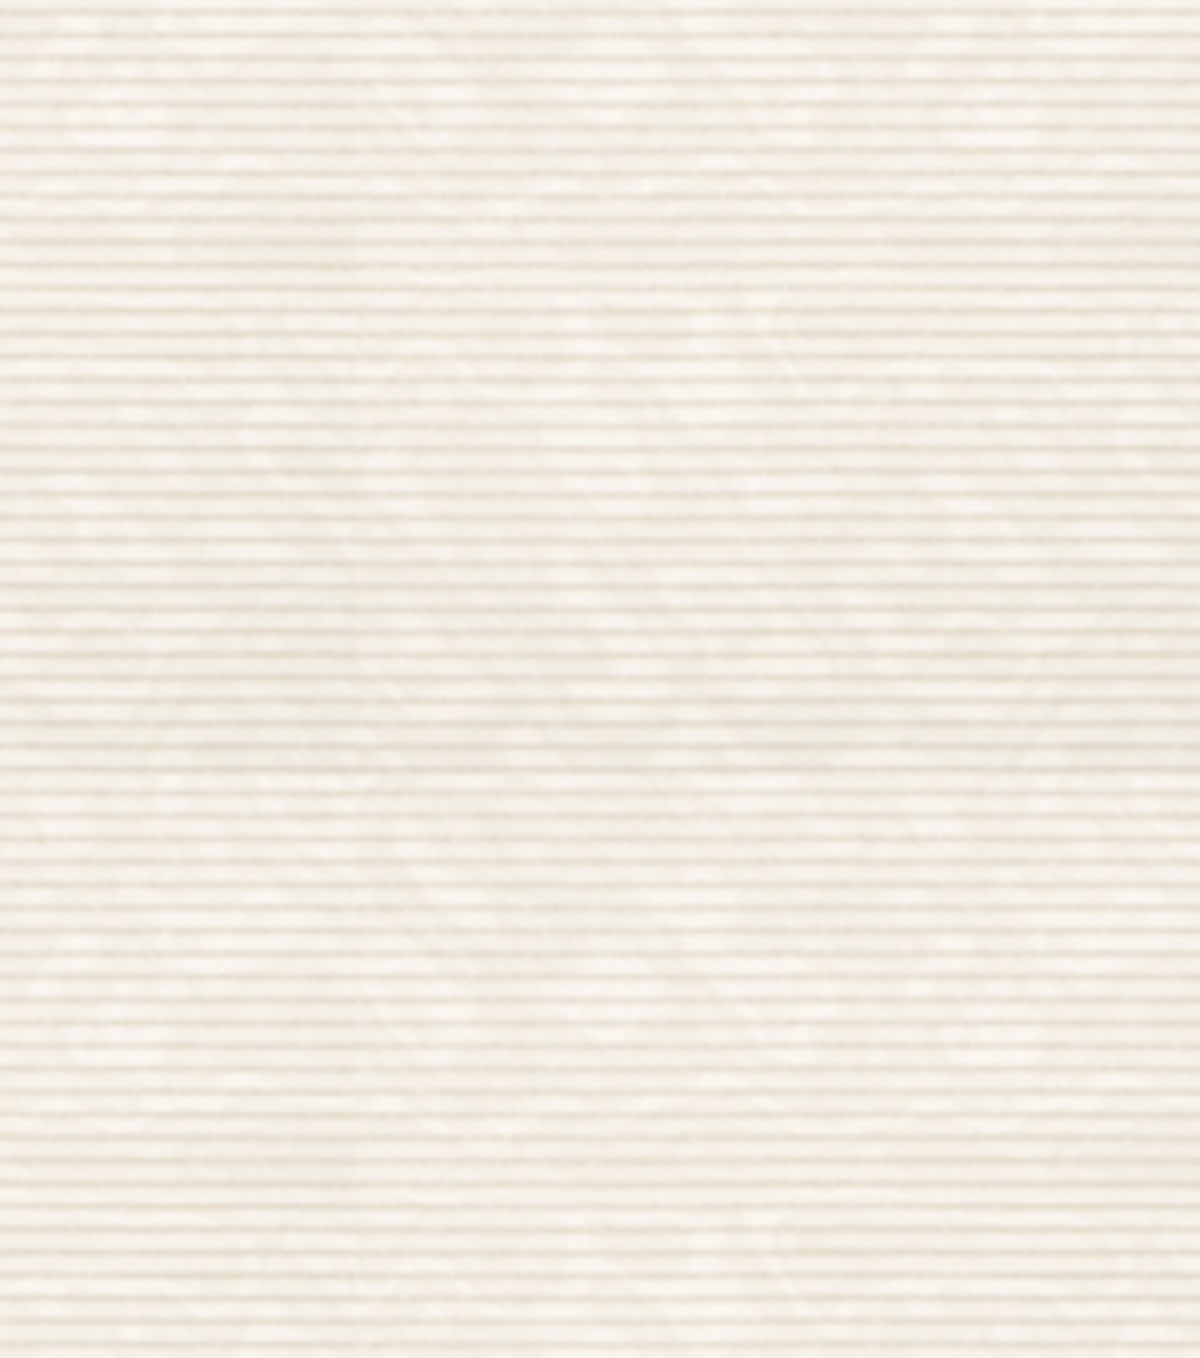 Home Decor 8\u0022x8\u0022 Fabric Swatch-Eaton Square Believe   Muslin